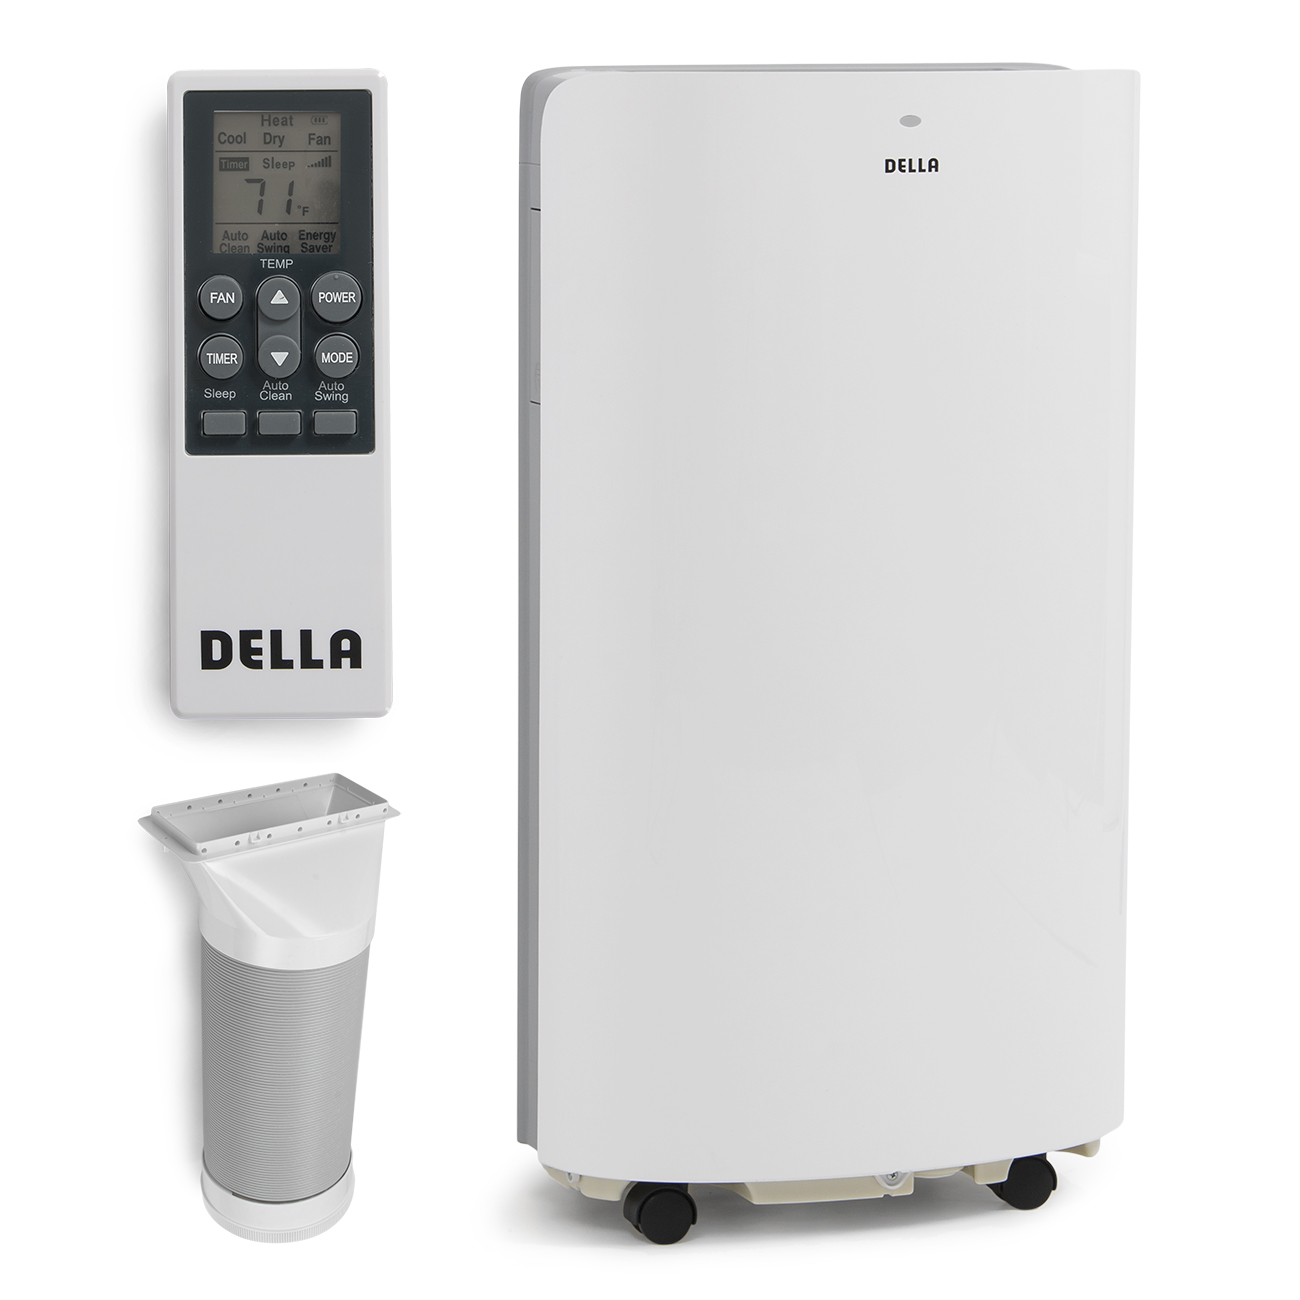 Delonghi portable air conditioner and heater - 14 000 Btu Portable Air Conditioner And Heater Function Led With Remote Control